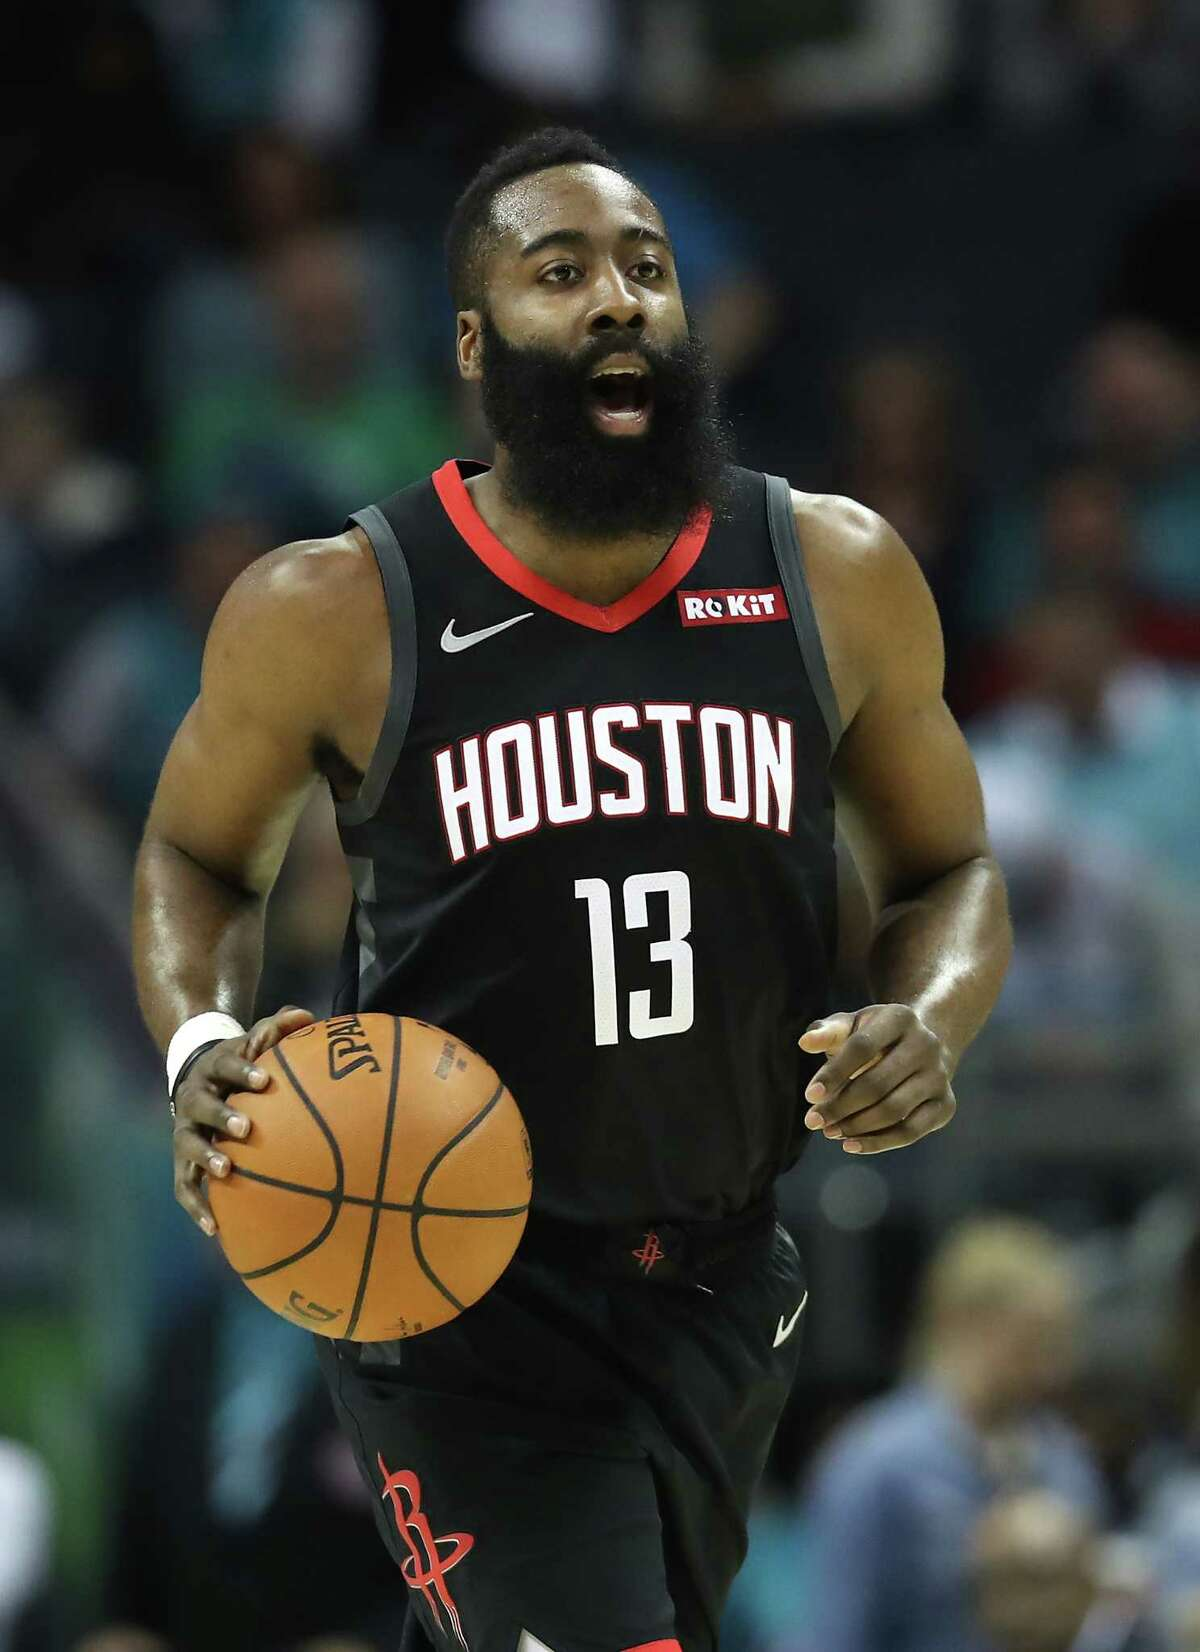 CHARLOTTE, NORTH CAROLINA - FEBRUARY 27: James Harden #13 of the Houston Rockets brings the ball up the court against the Charlotte Hornets during their game at Spectrum Center on February 27, 2019 in Charlotte, North Carolina. NOTE TO USER: User expressly acknowledges and agrees that, by downloading and or using this photograph, User is consenting to the terms and conditions of the Getty Images License Agreement. (Photo by Streeter Lecka/Getty Images)